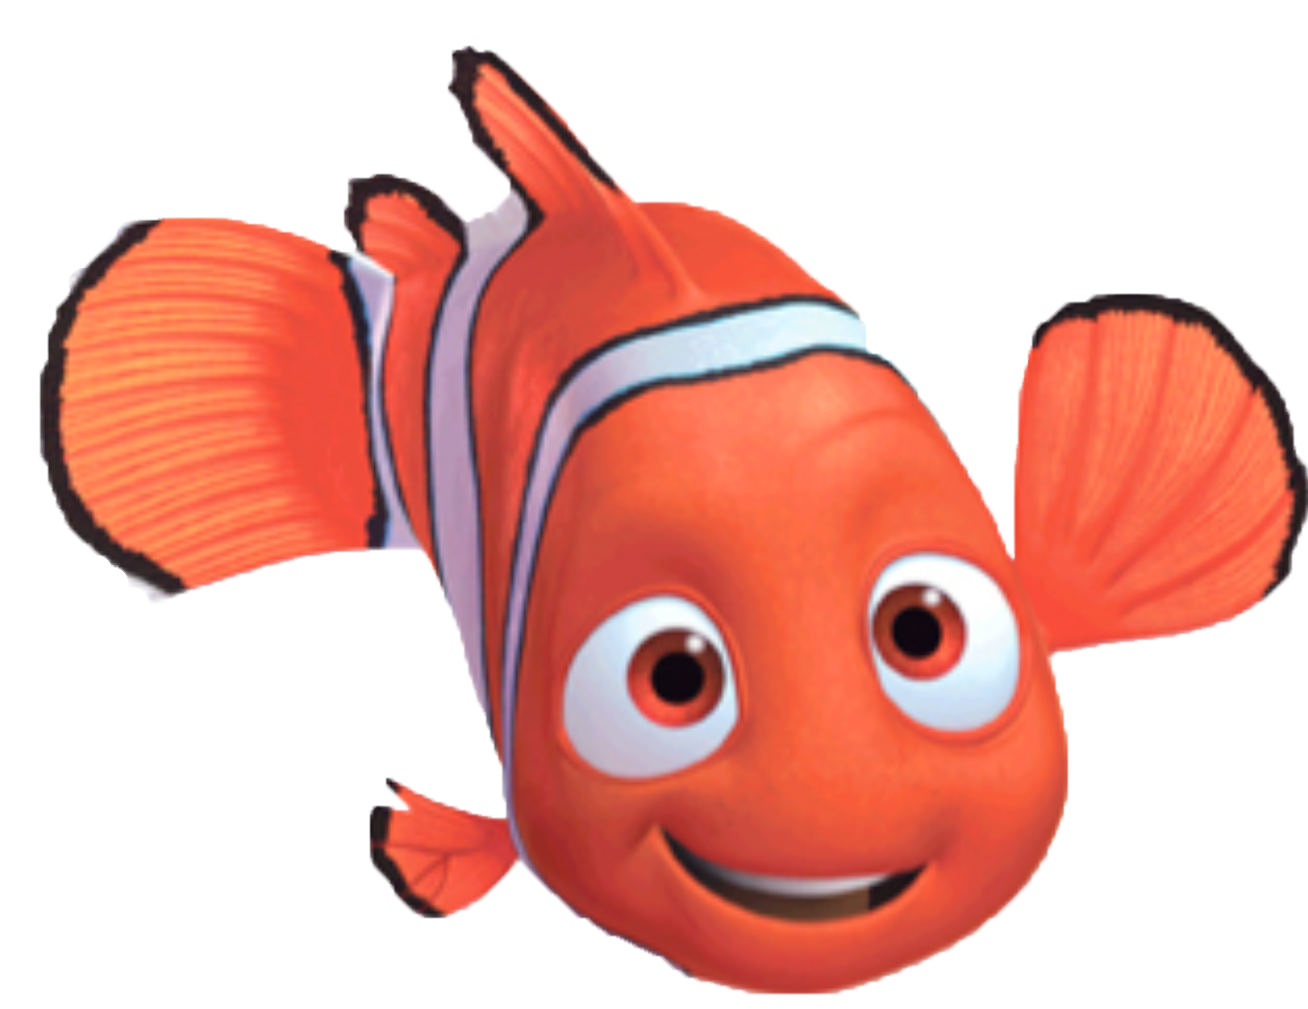 Disney angel fish dory clipart image freeuse Anemone Clipart at GetDrawings.com | Free for personal use Anemone ... image freeuse